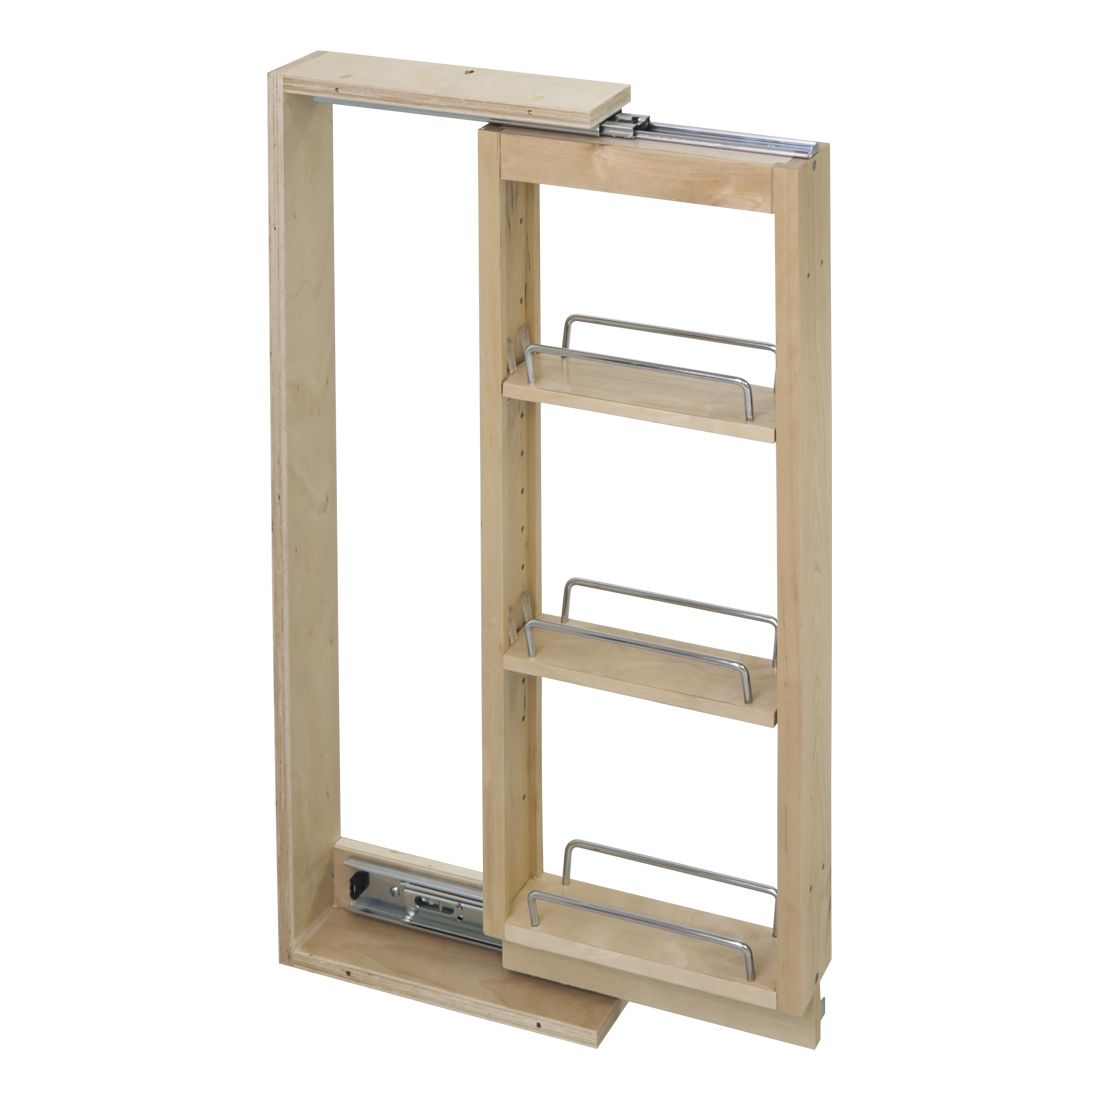 Chang E 3 Hardware Resources Wfpo Wall Cabinet Filler Pullout